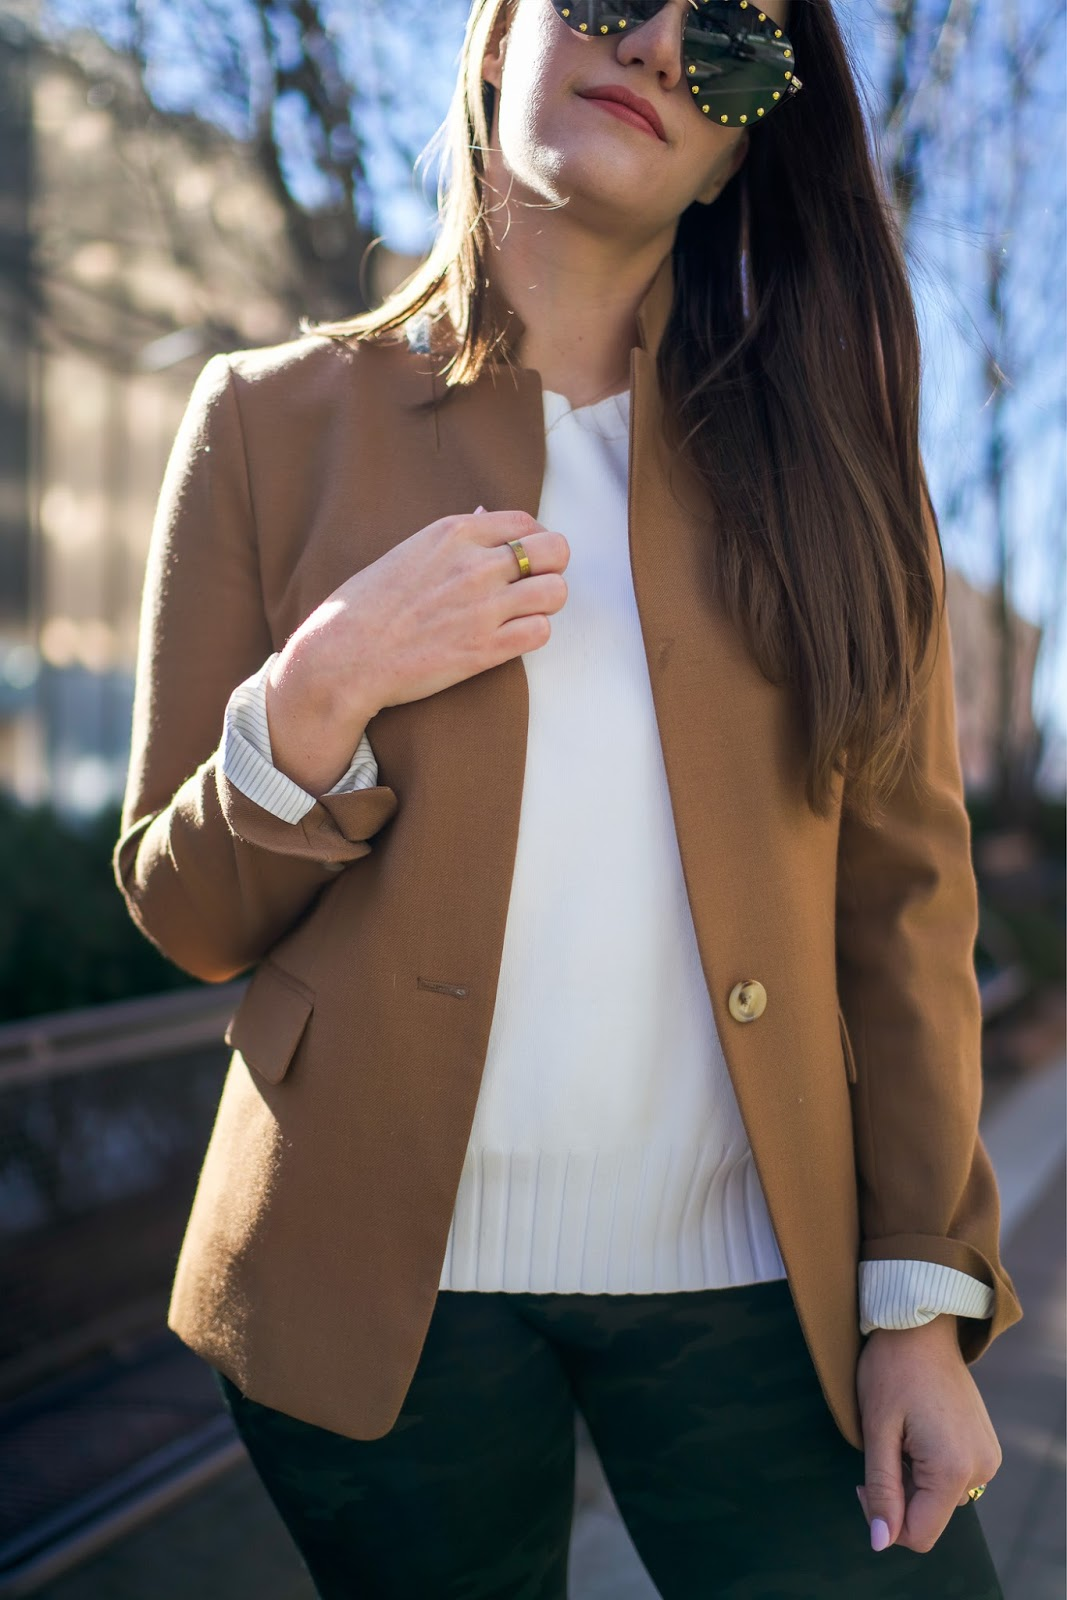 popular New York style blogger Covering the Bases